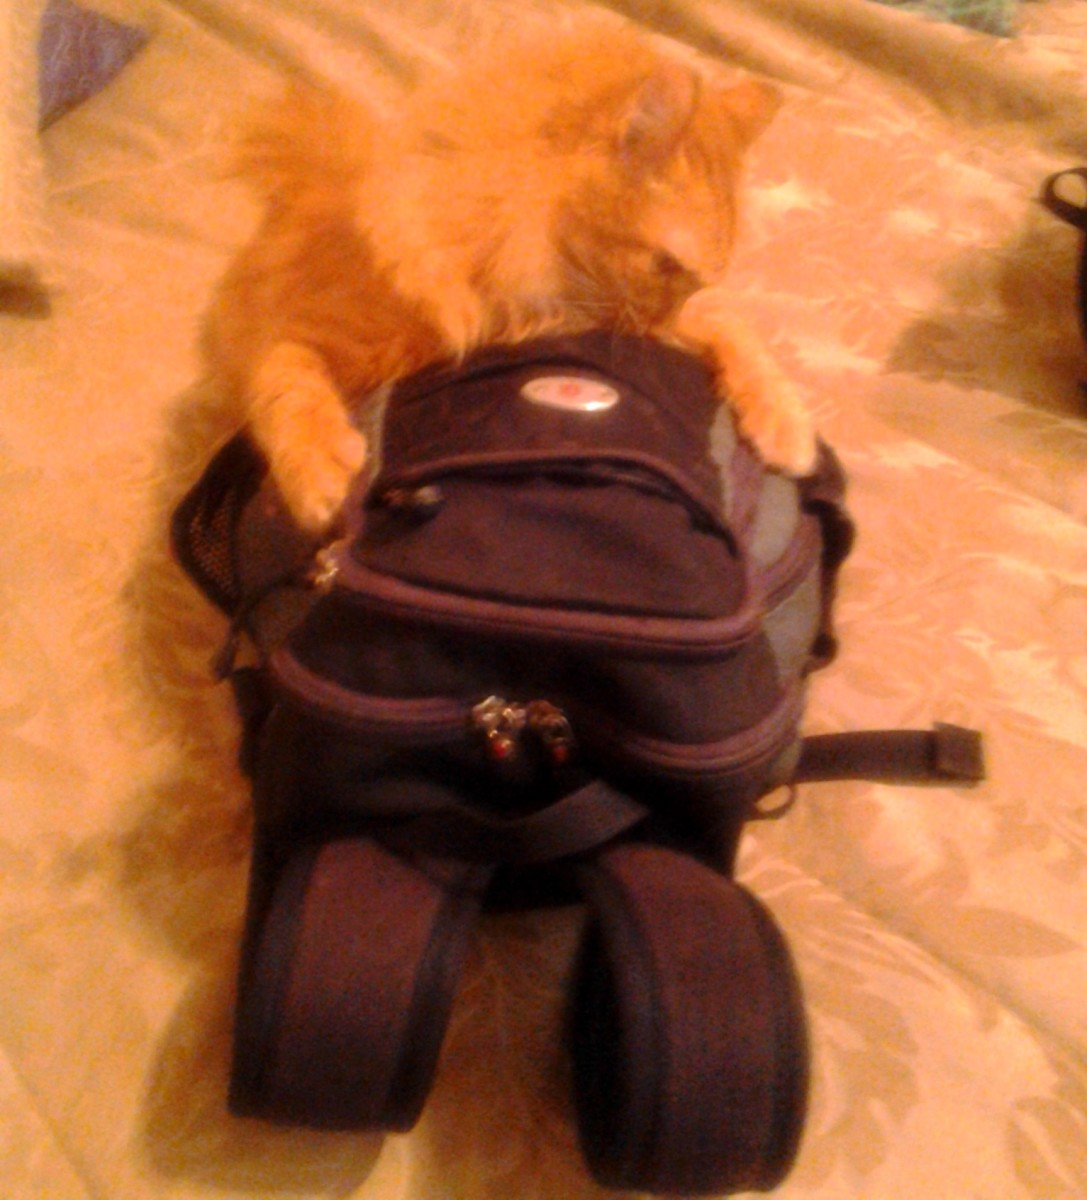 If I destroy her backpack, Mama can't make me travel, right?